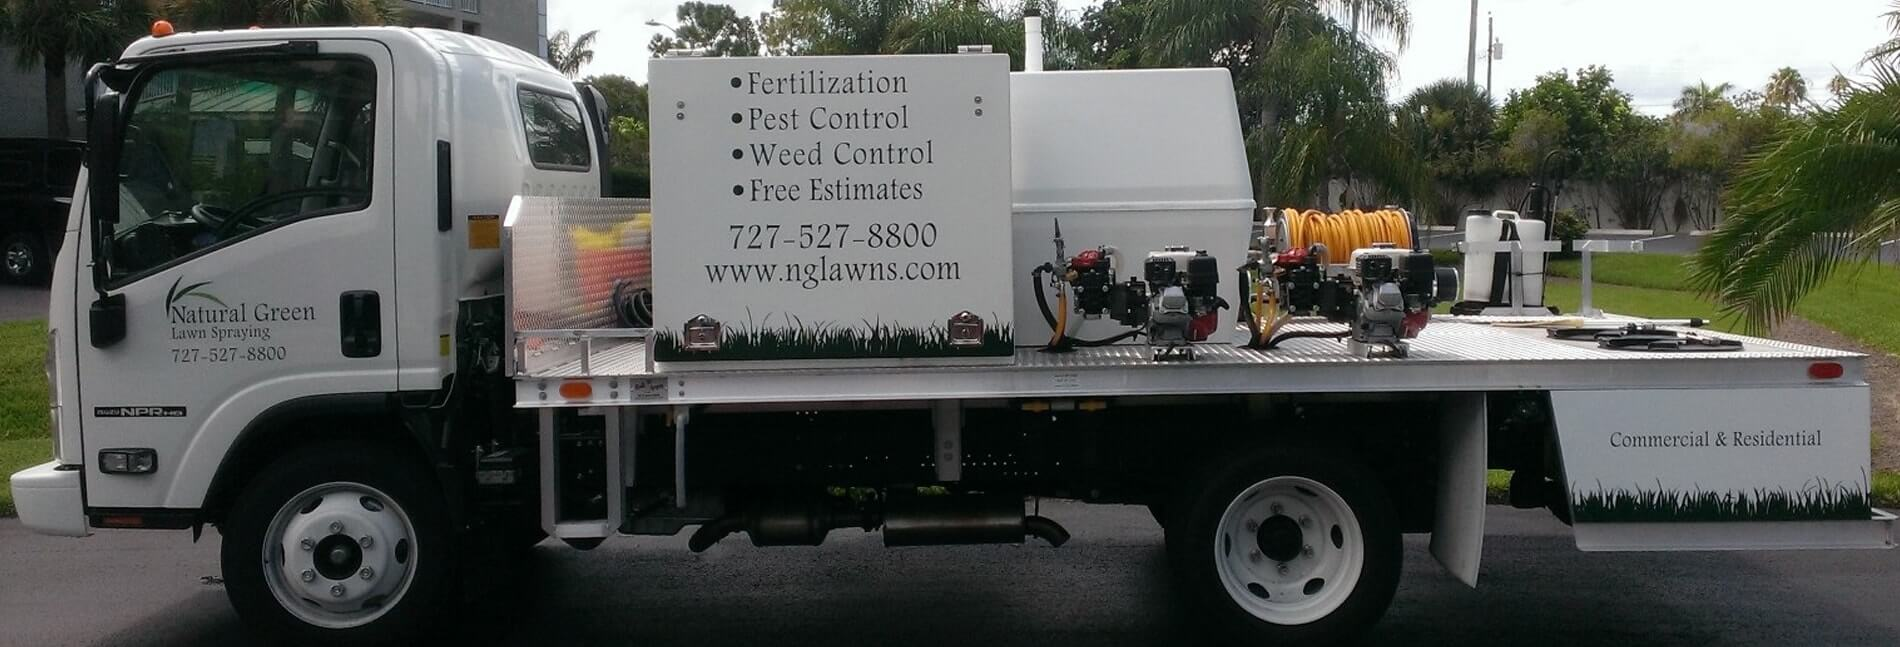 lawn spraying work truck with equipment